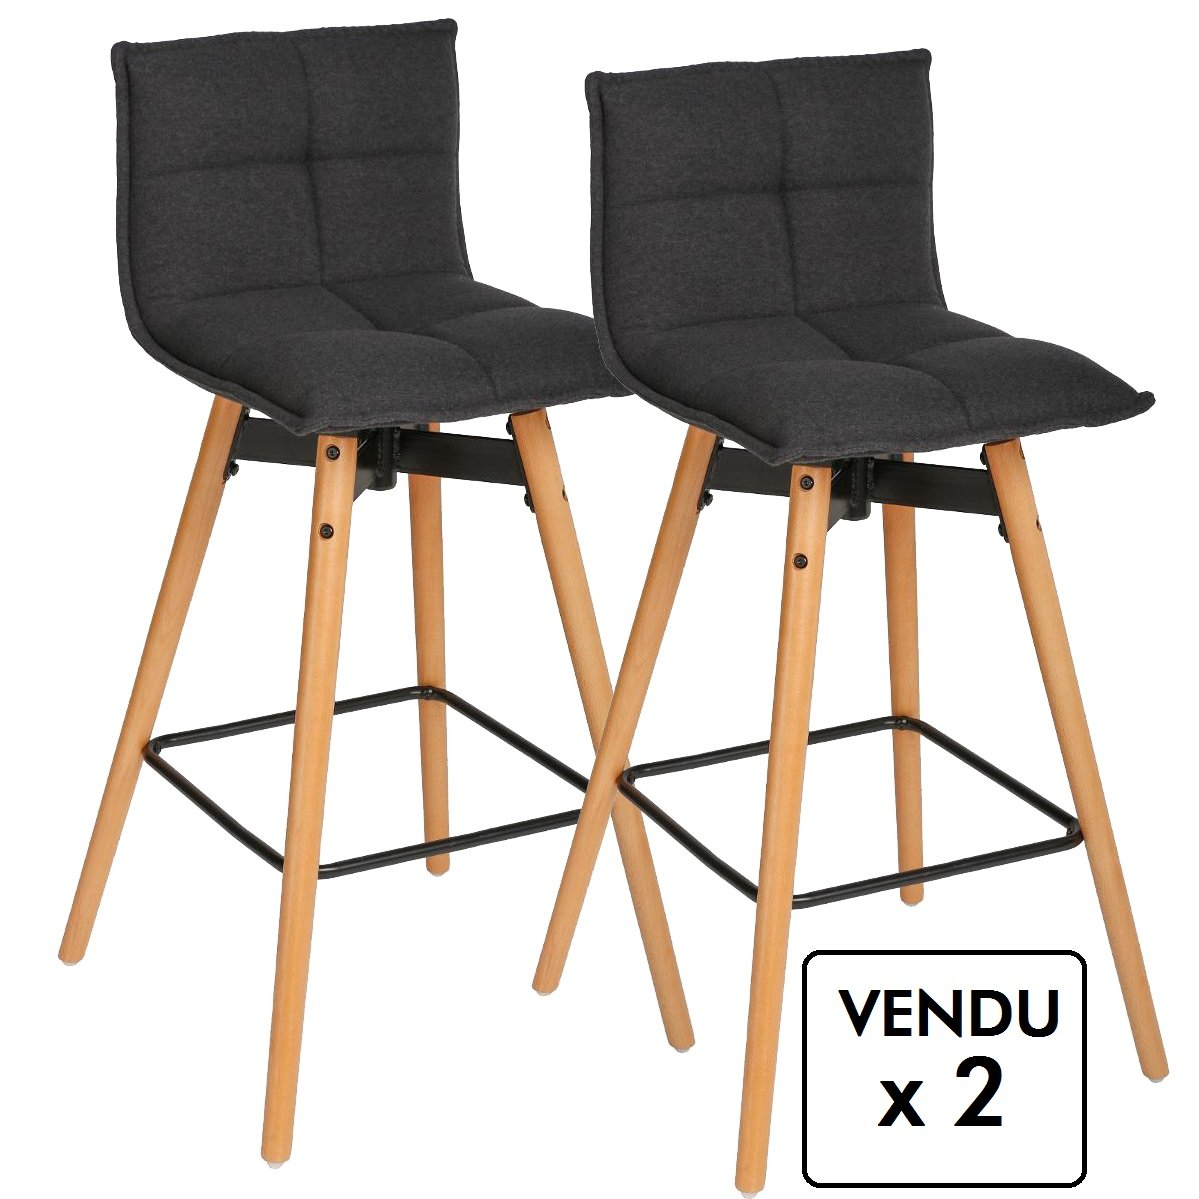 Lot de 2 tabourets de bar - Style design - Coloris GRIS Anthracite